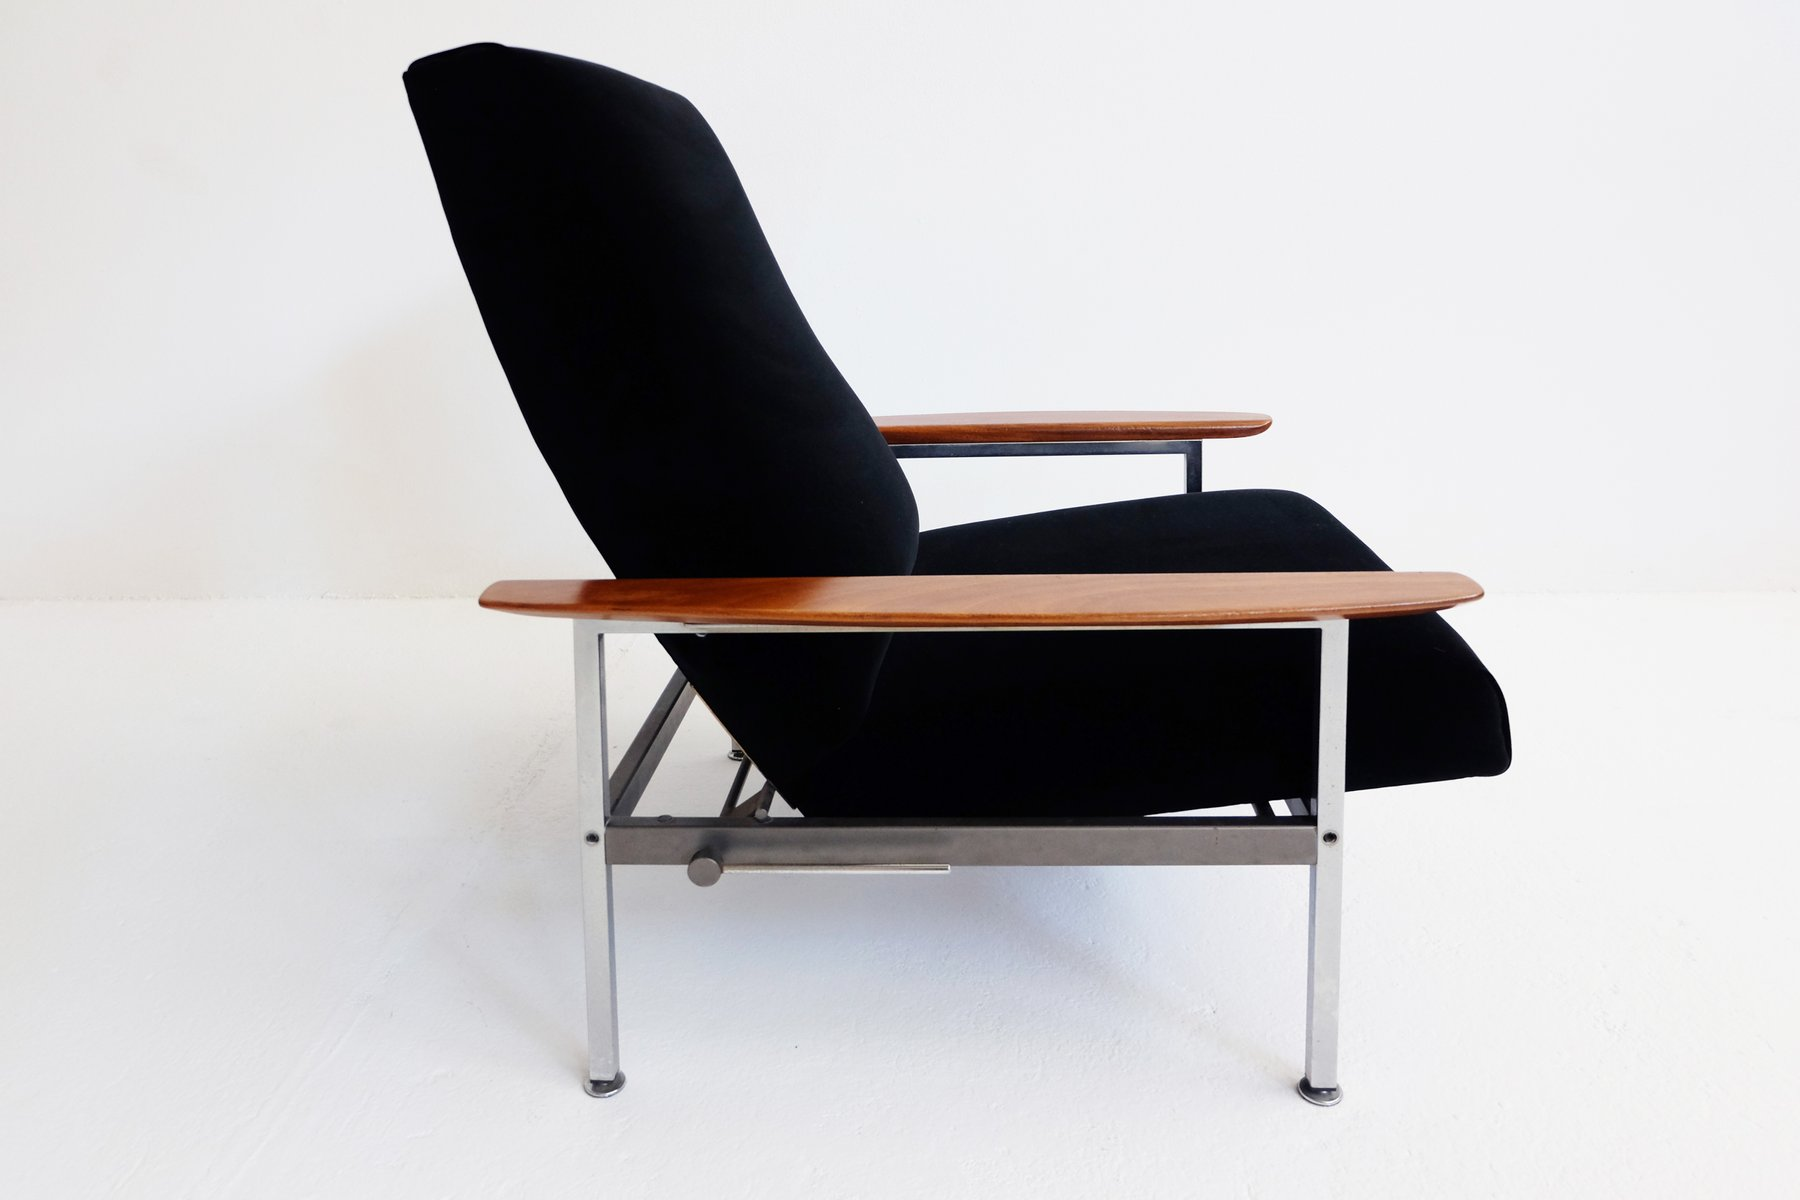 Verstellbare Sessel Adjustable Lounge Chair 1960s